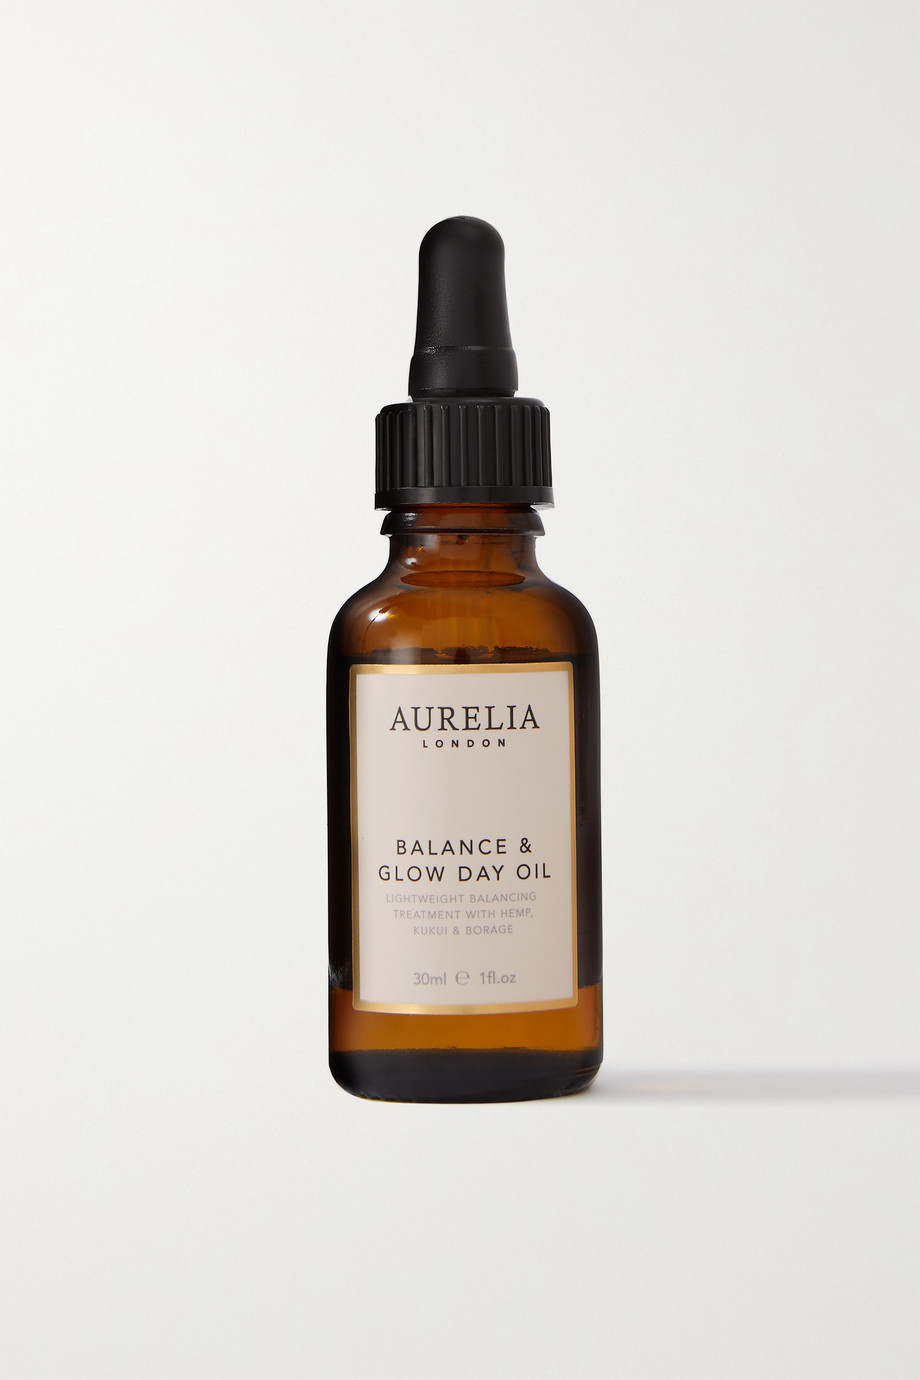 AURELIA PROBIOTIC SKINCARE Balance & Glow Day Oil, 30ml